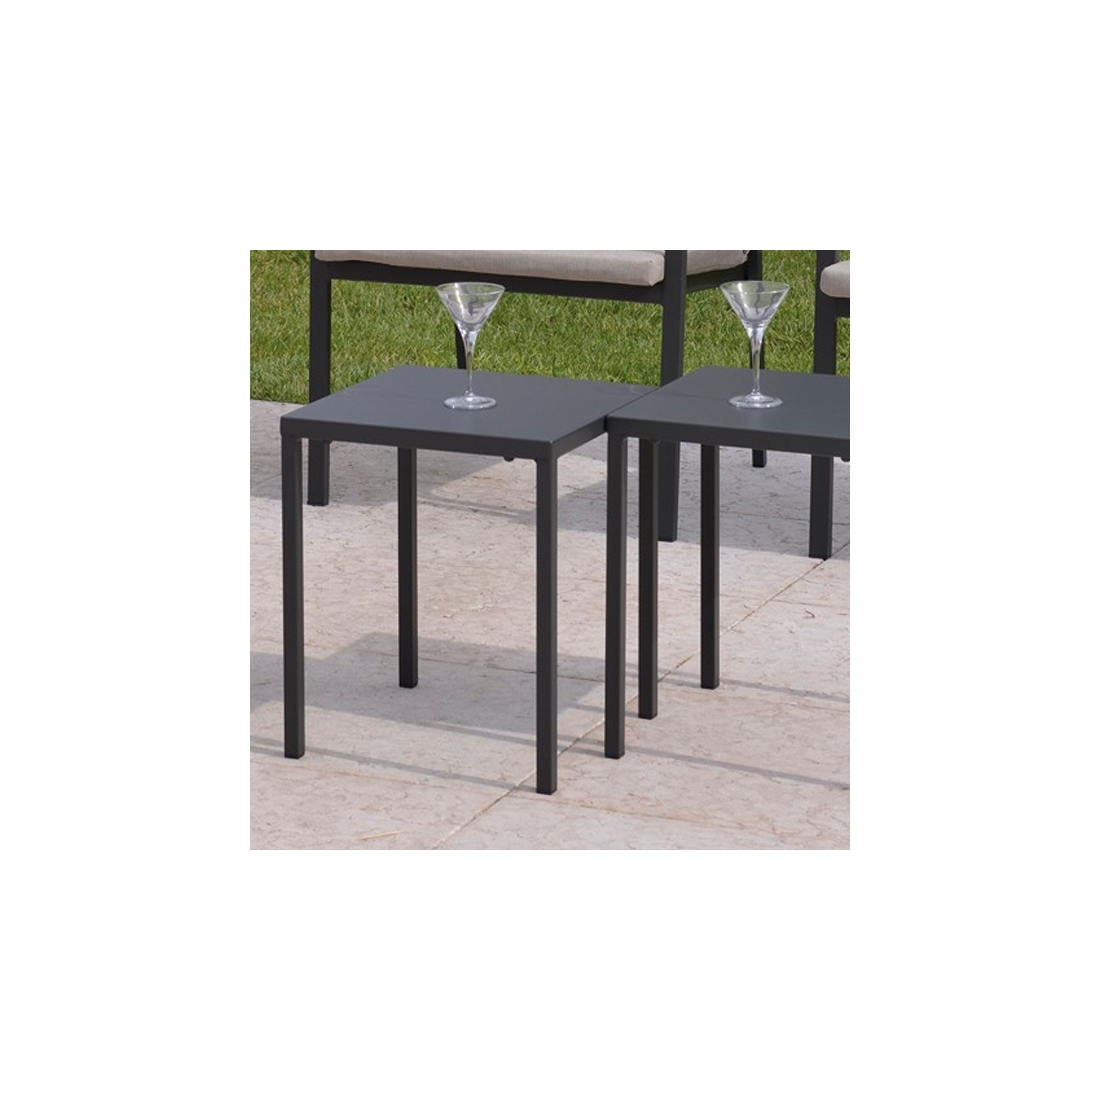 Petite table basse de jardin rd italia zendart design - Table de jardin design ...